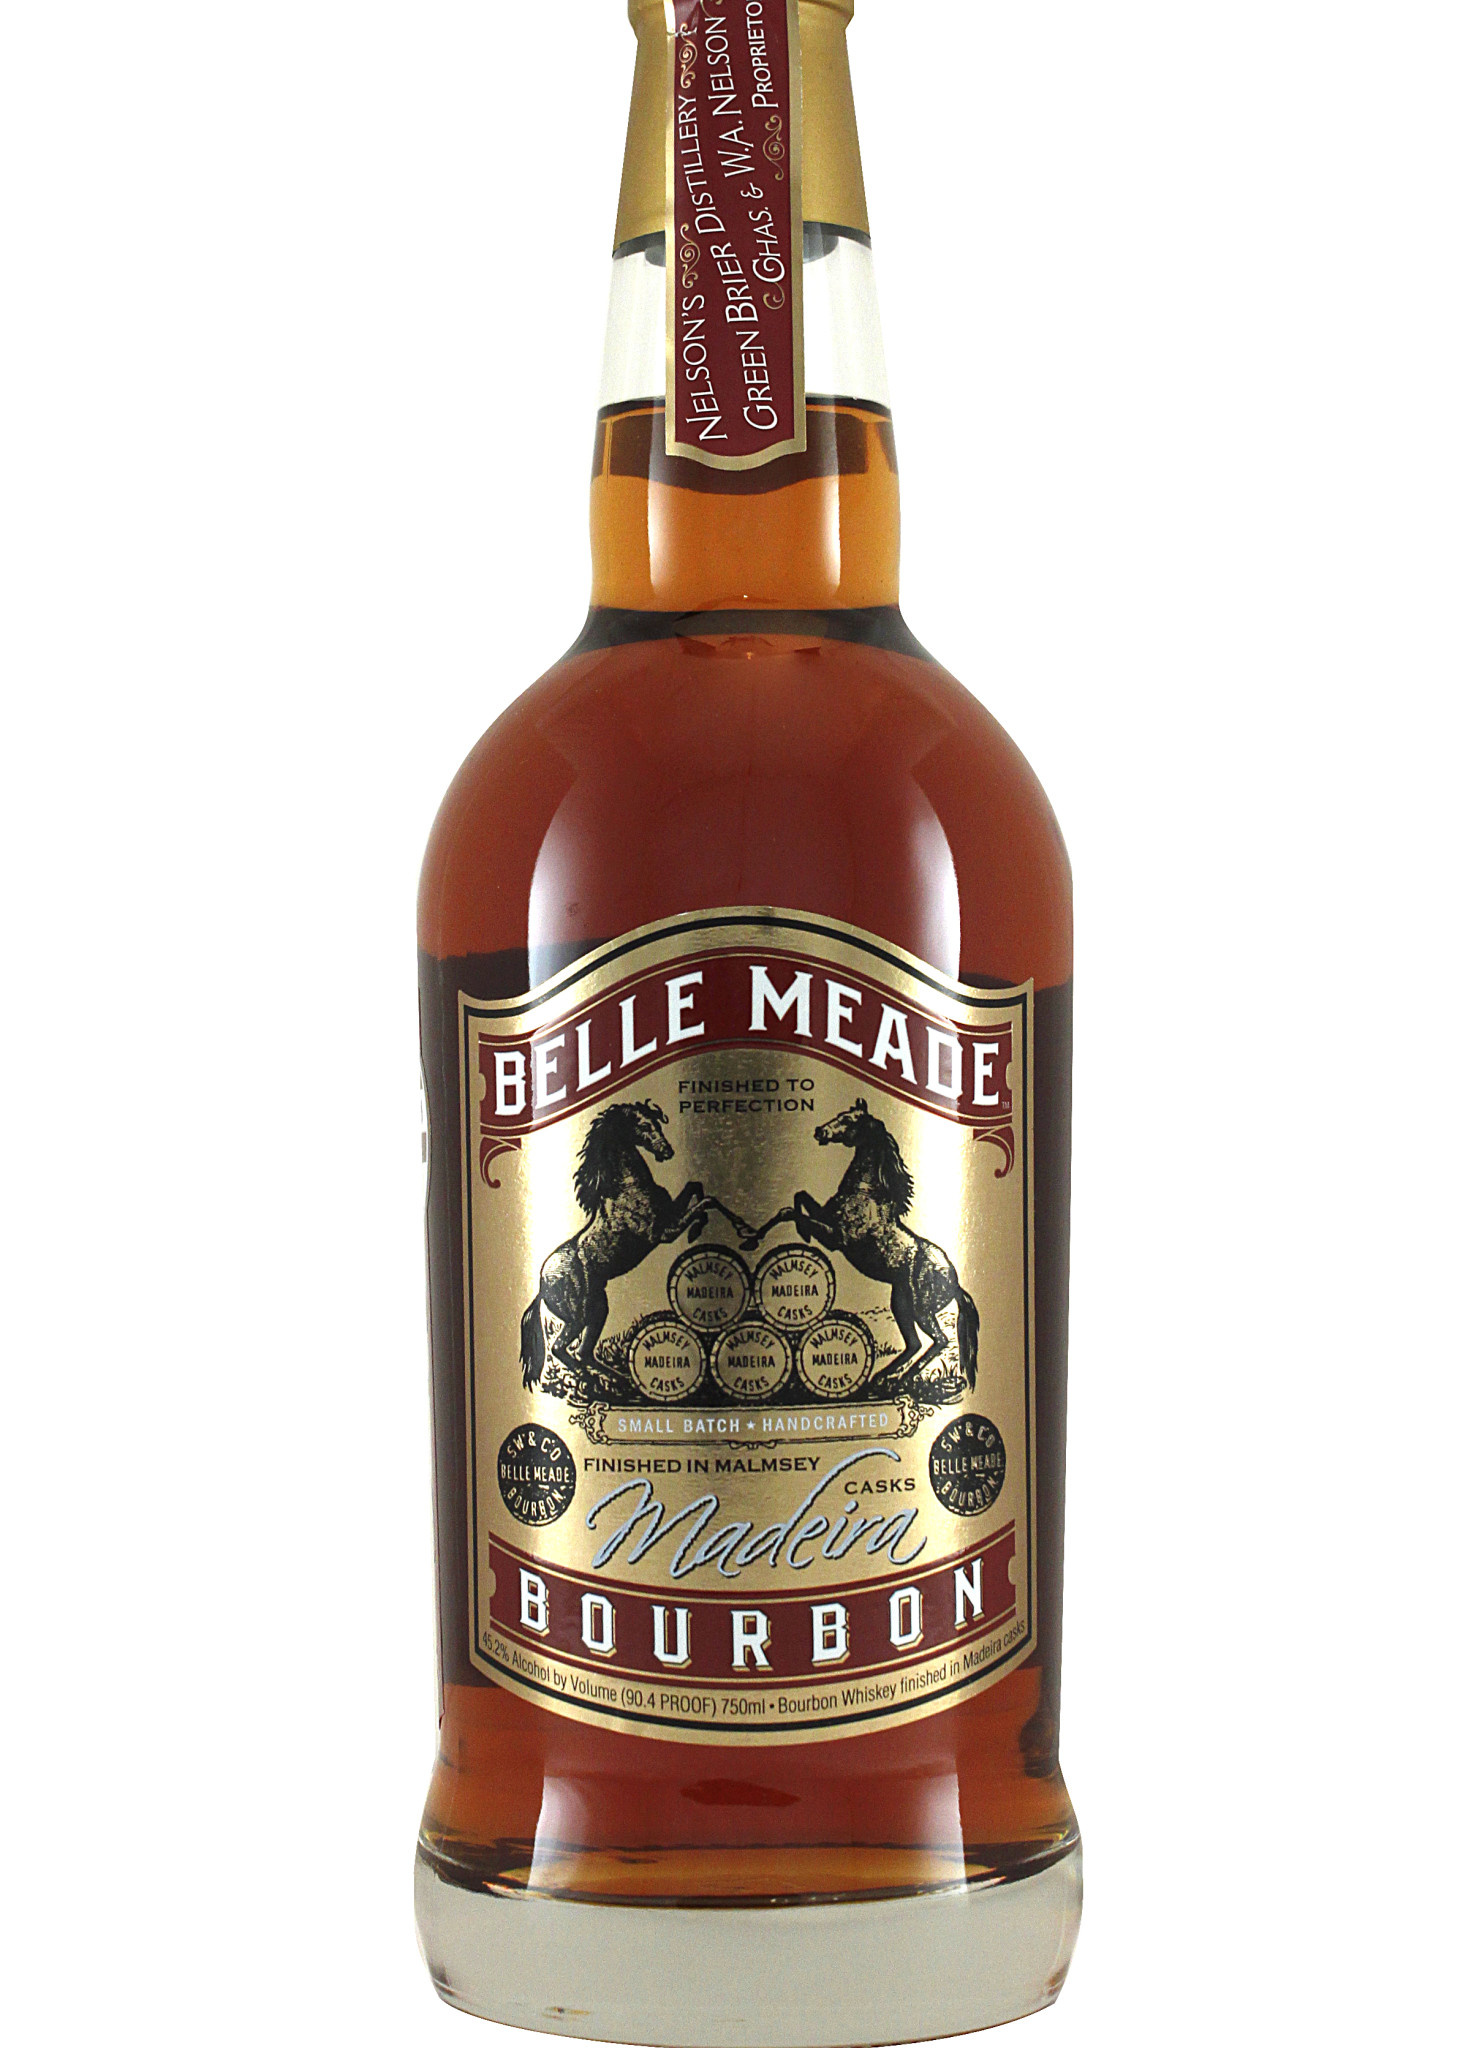 Belle Meade Bourbon Finished in Madeira Casks, Nashville, Tennessee